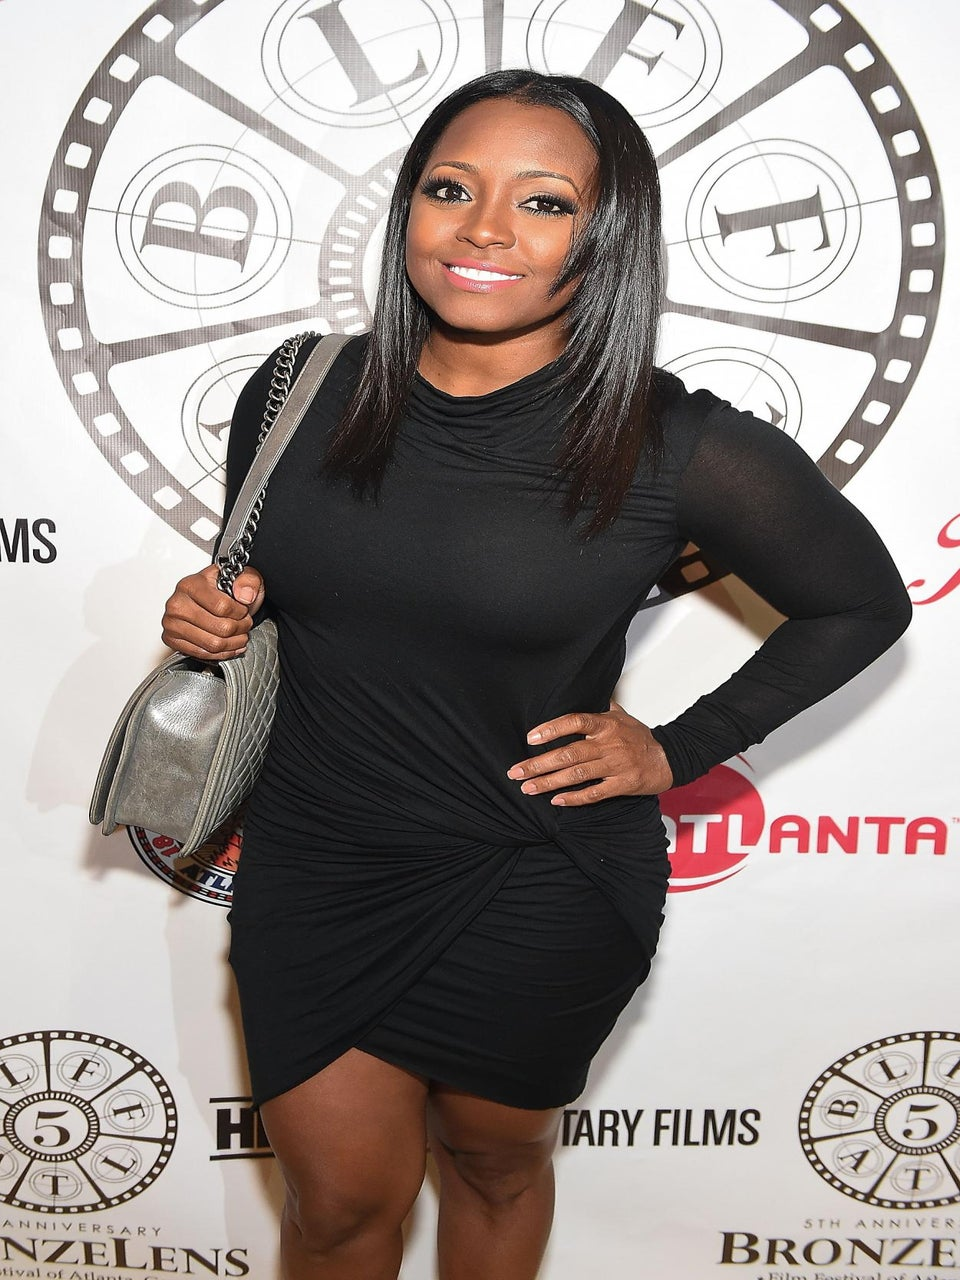 Keshia Knight Pulliam On Bill Cosby Allegations: 'There Are Two Sides To a Story'